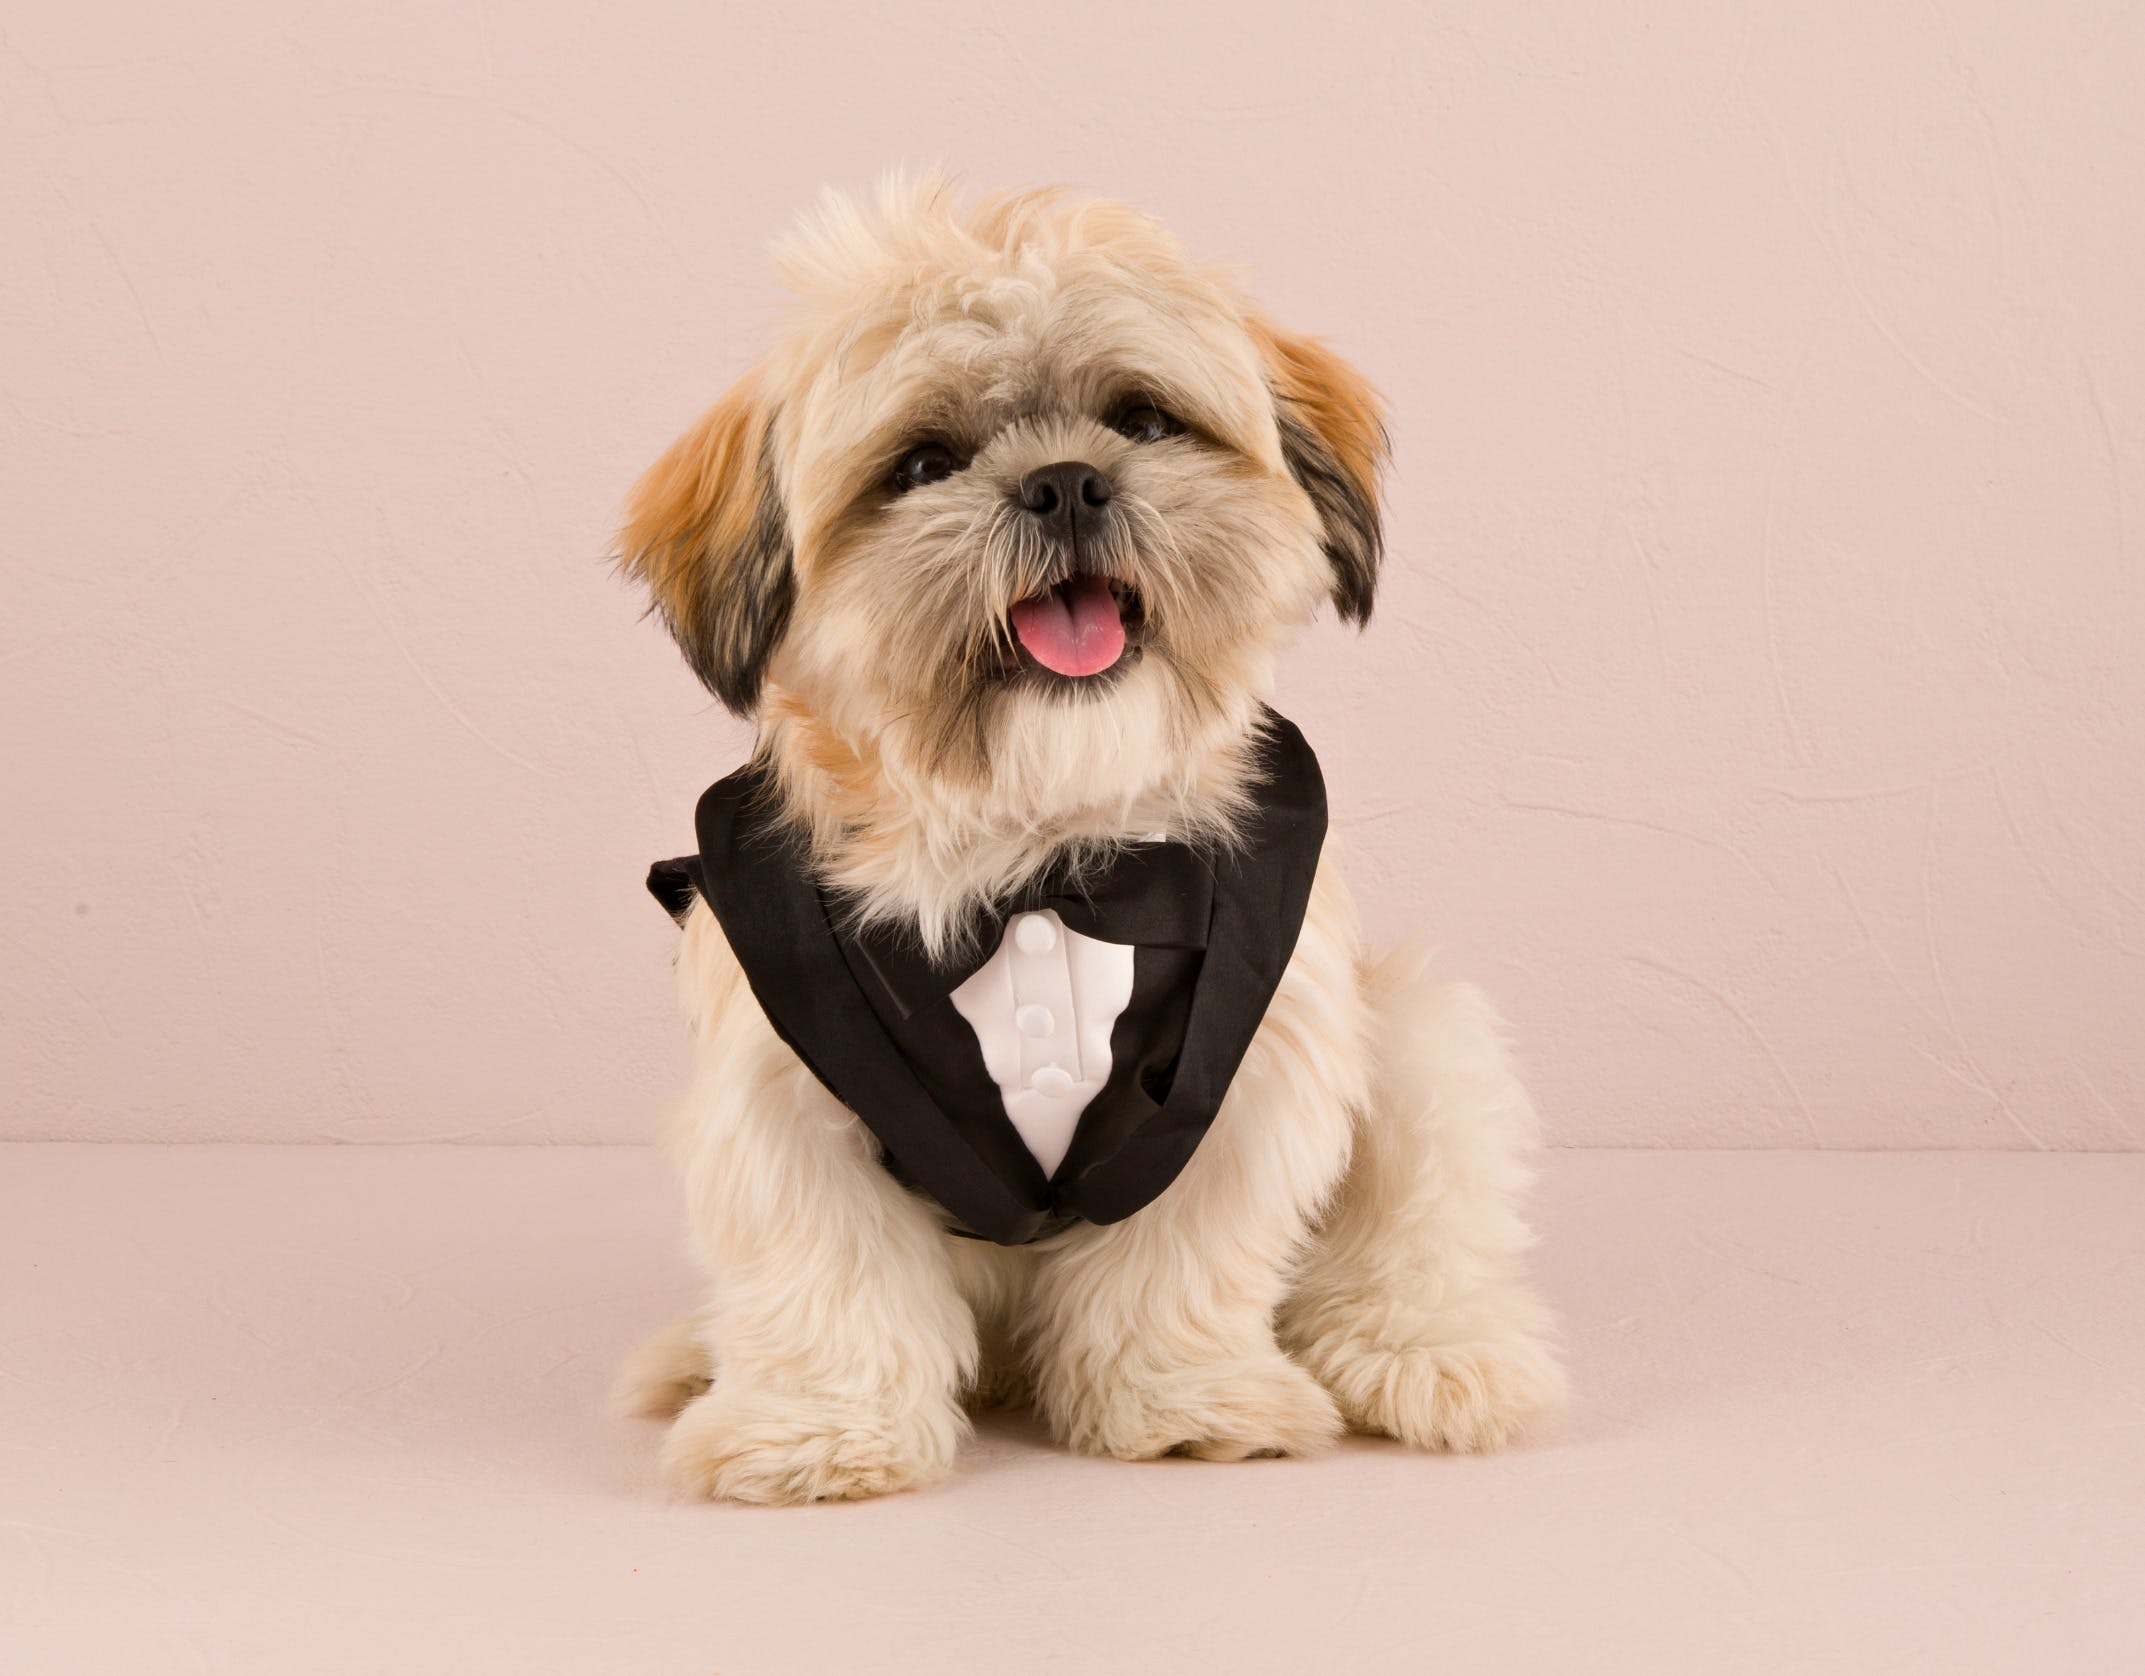 Dog wedding tuxedo | Confetti.co.uk